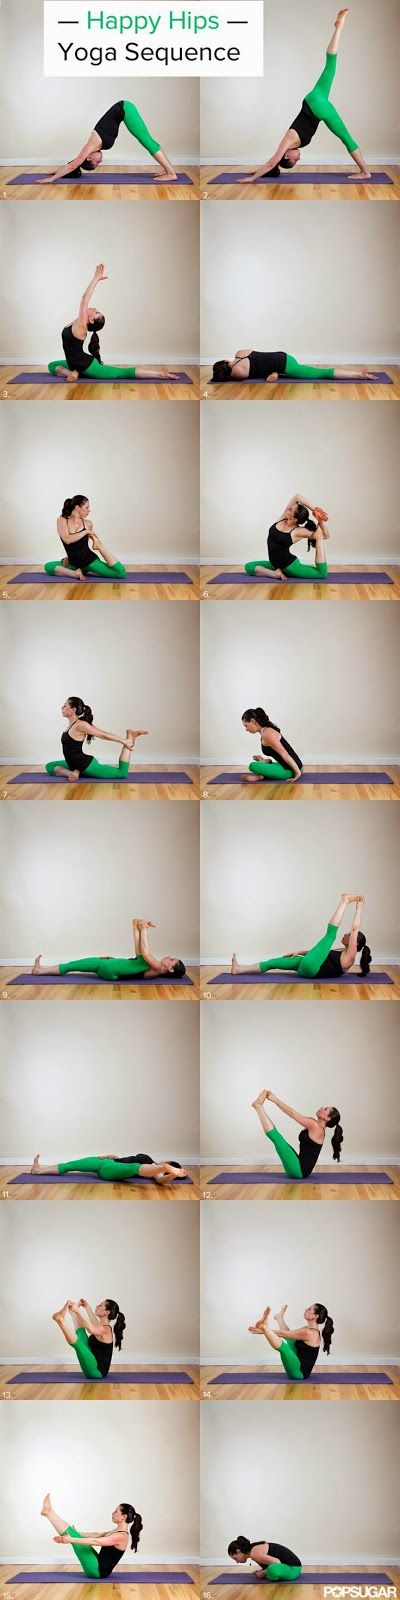 Happy Hips Yoga Sequence. Keep your hips strong! Perfect way to prevent injury. #Yoga #Hips #Strength